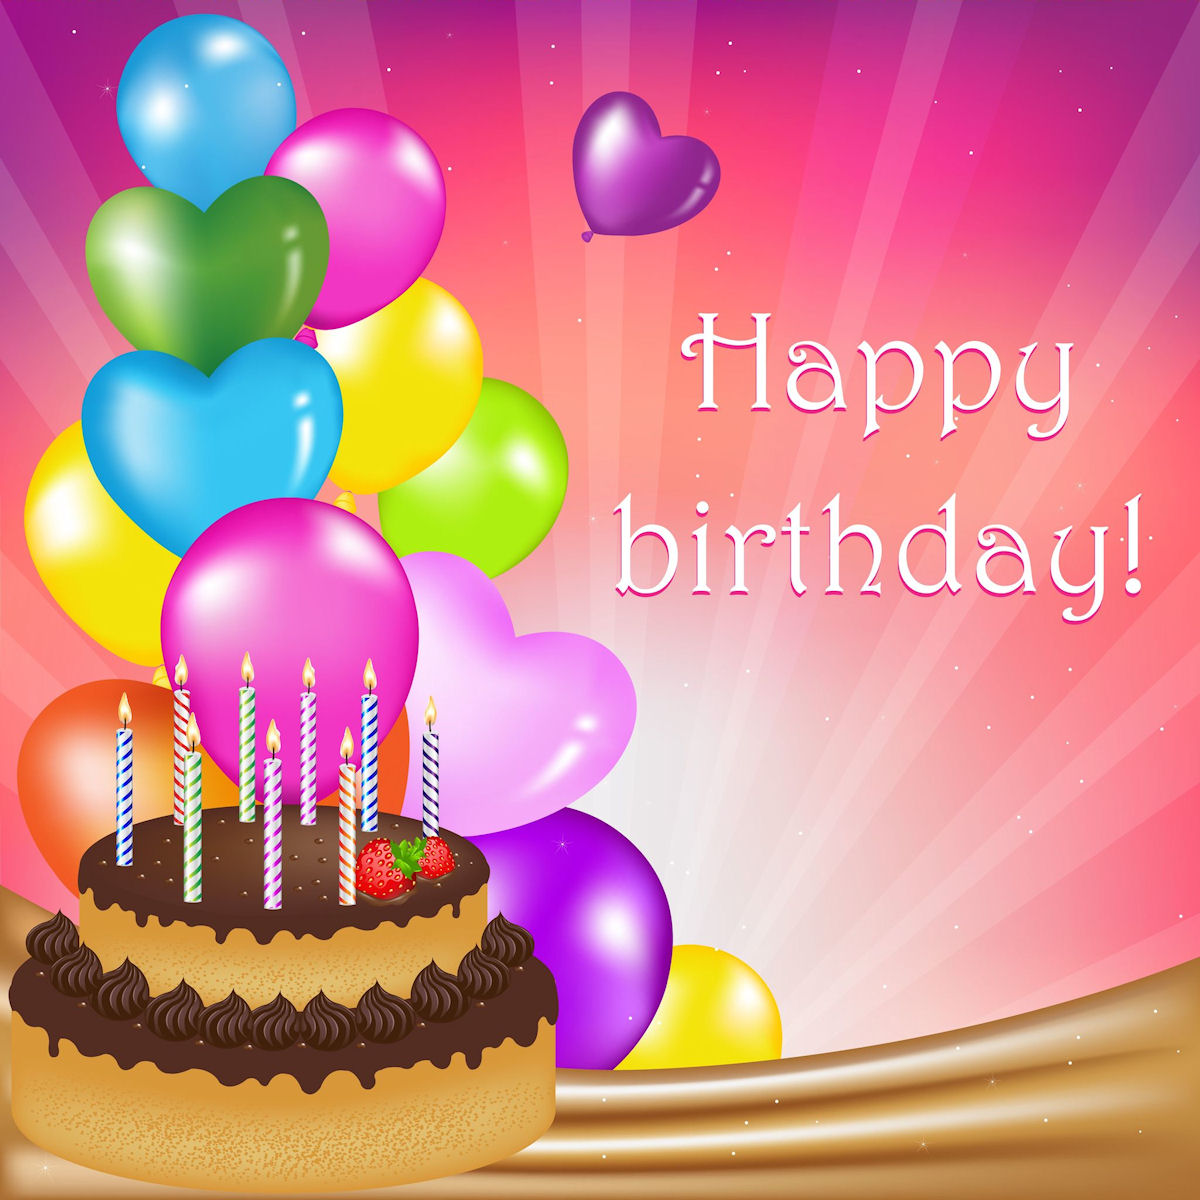 Cartas de cumplea c3 b1os colouring pages - 208 Best Cumplea Os Images On Pinterest Happy Birthday Birthday Wishes And Birthday Cards